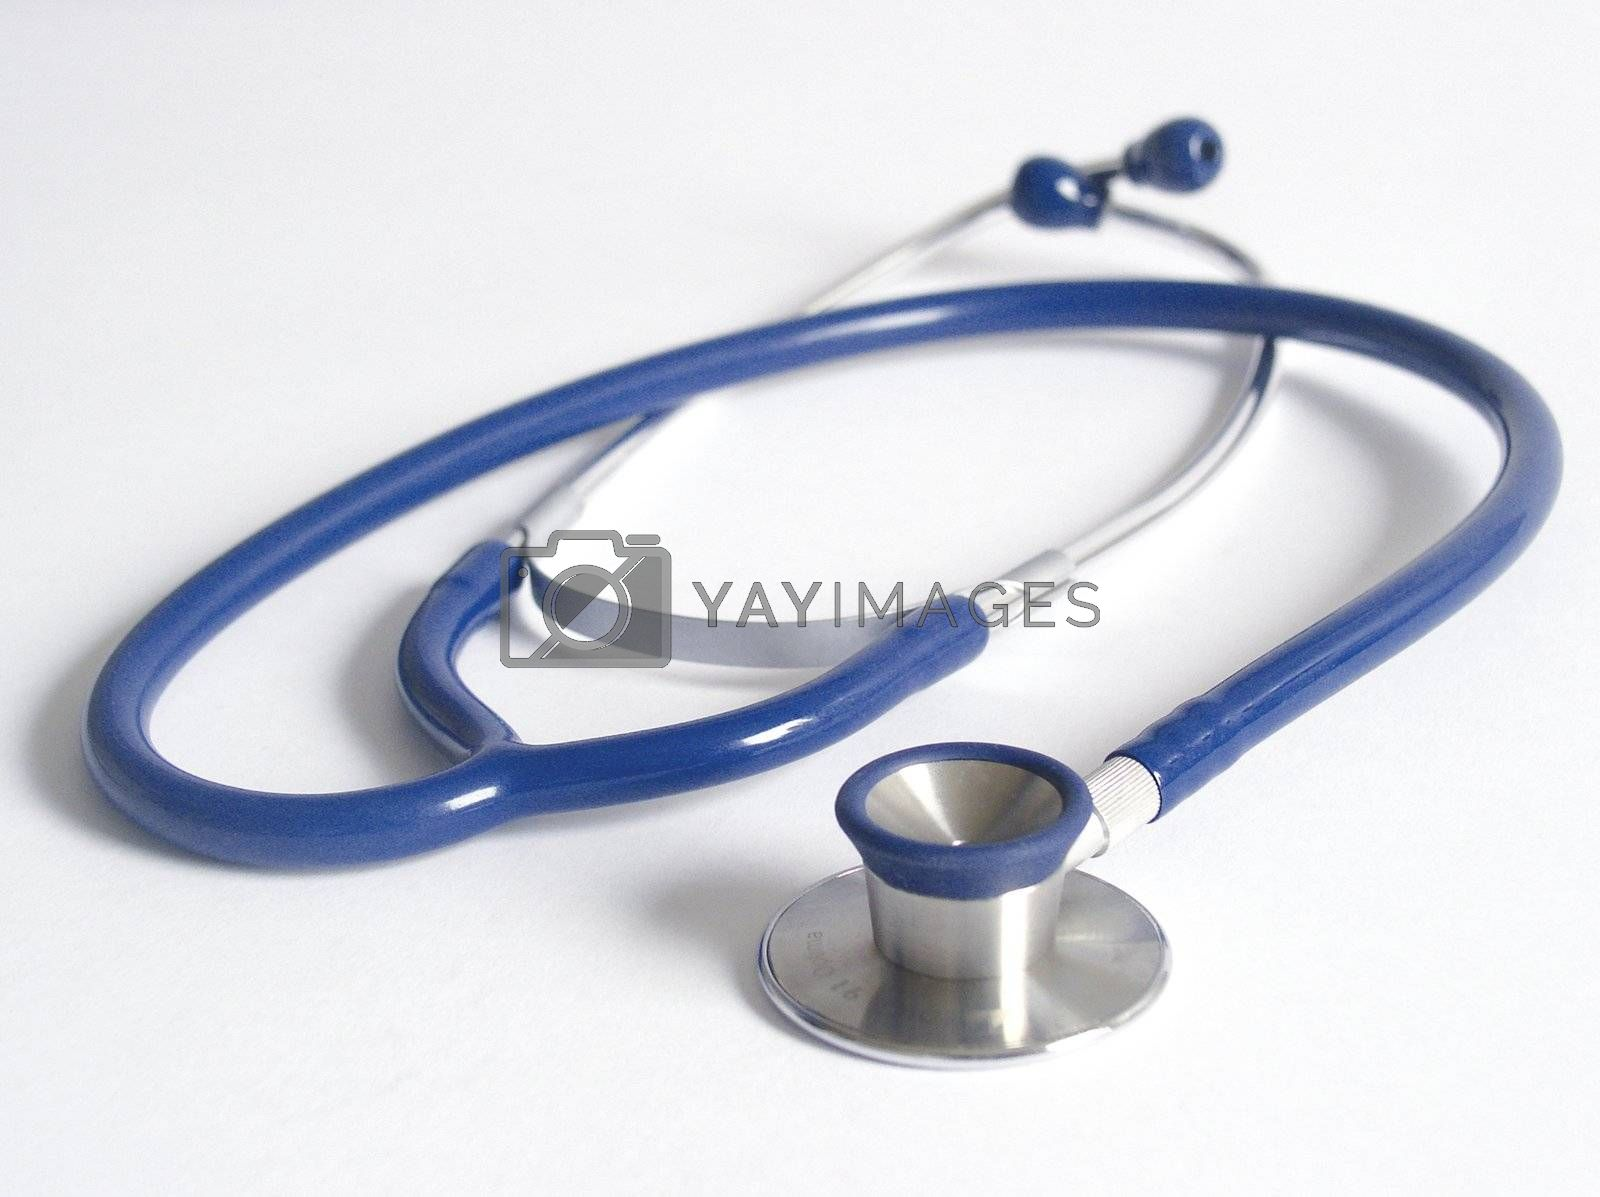 Royalty free image of stethoscope by kapp